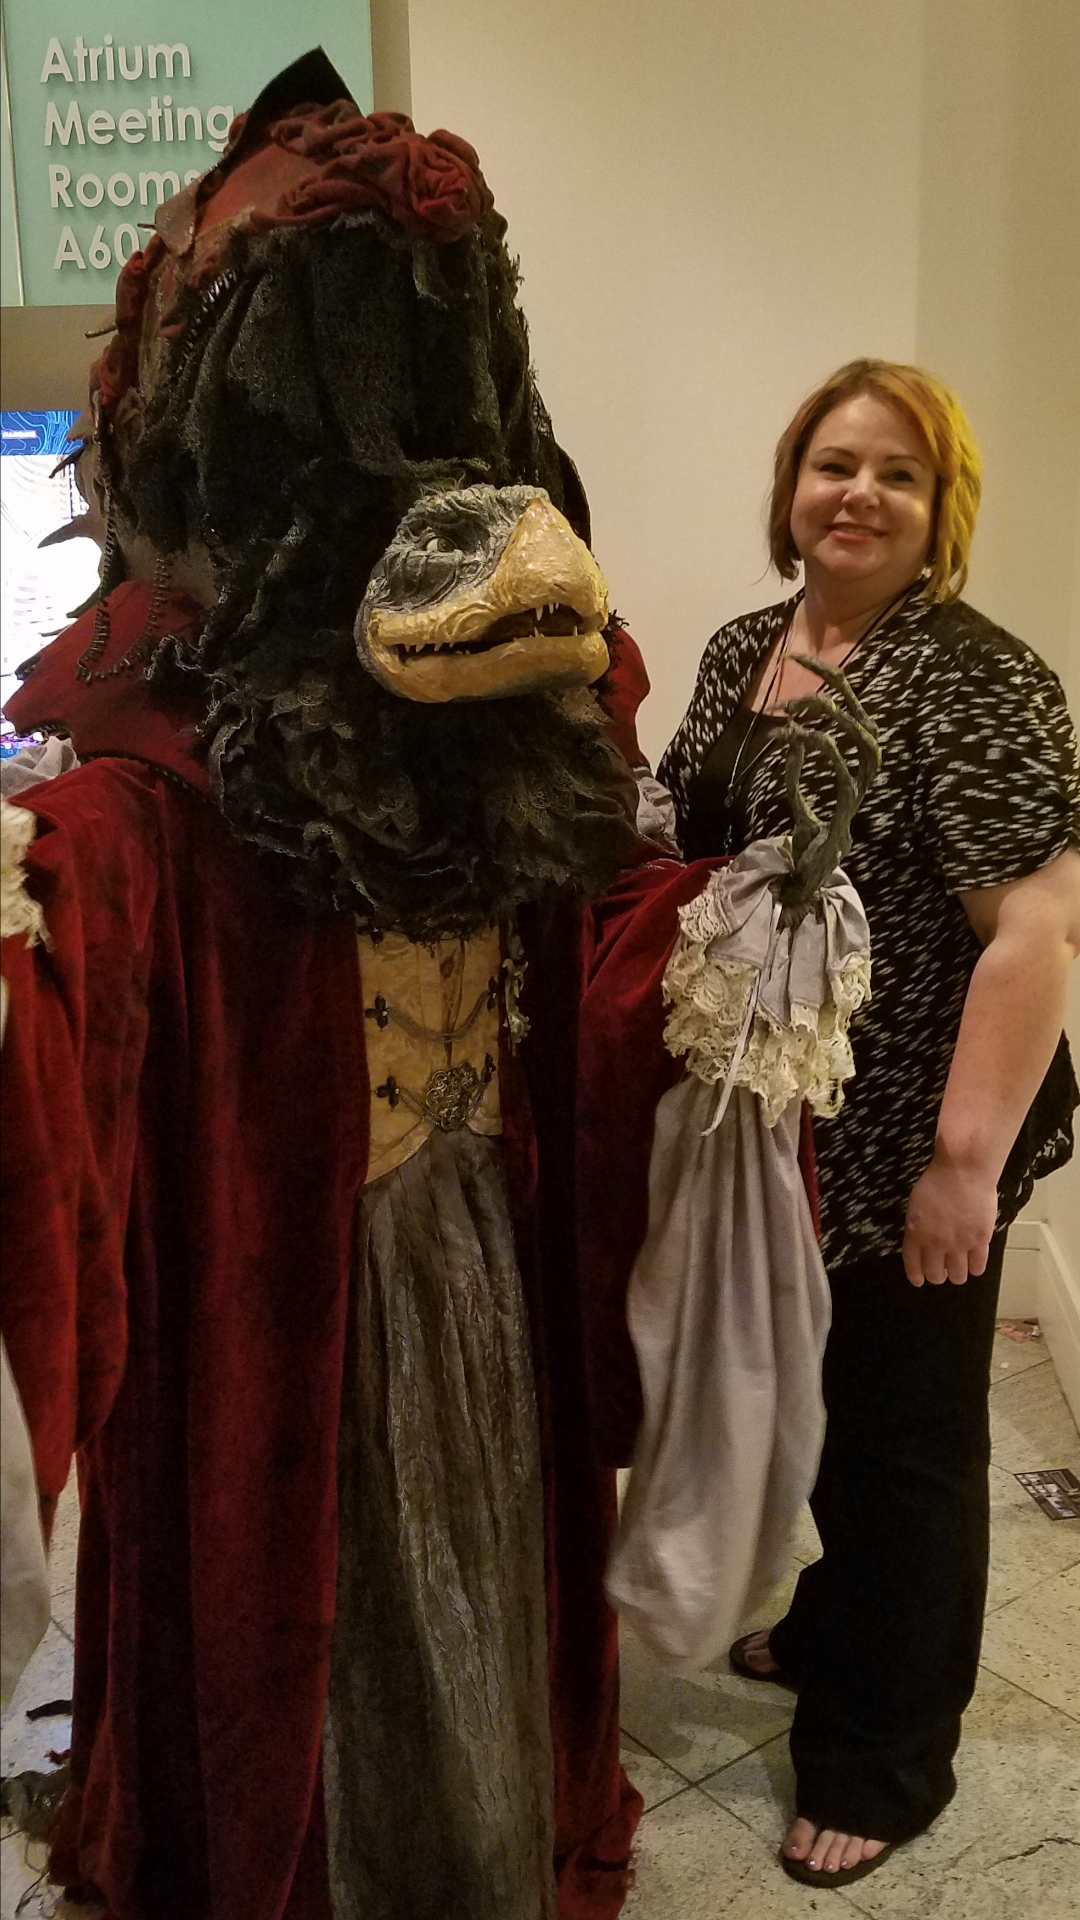 One of many amazing Dark Crystal cosplayers and builders at DragonCon.